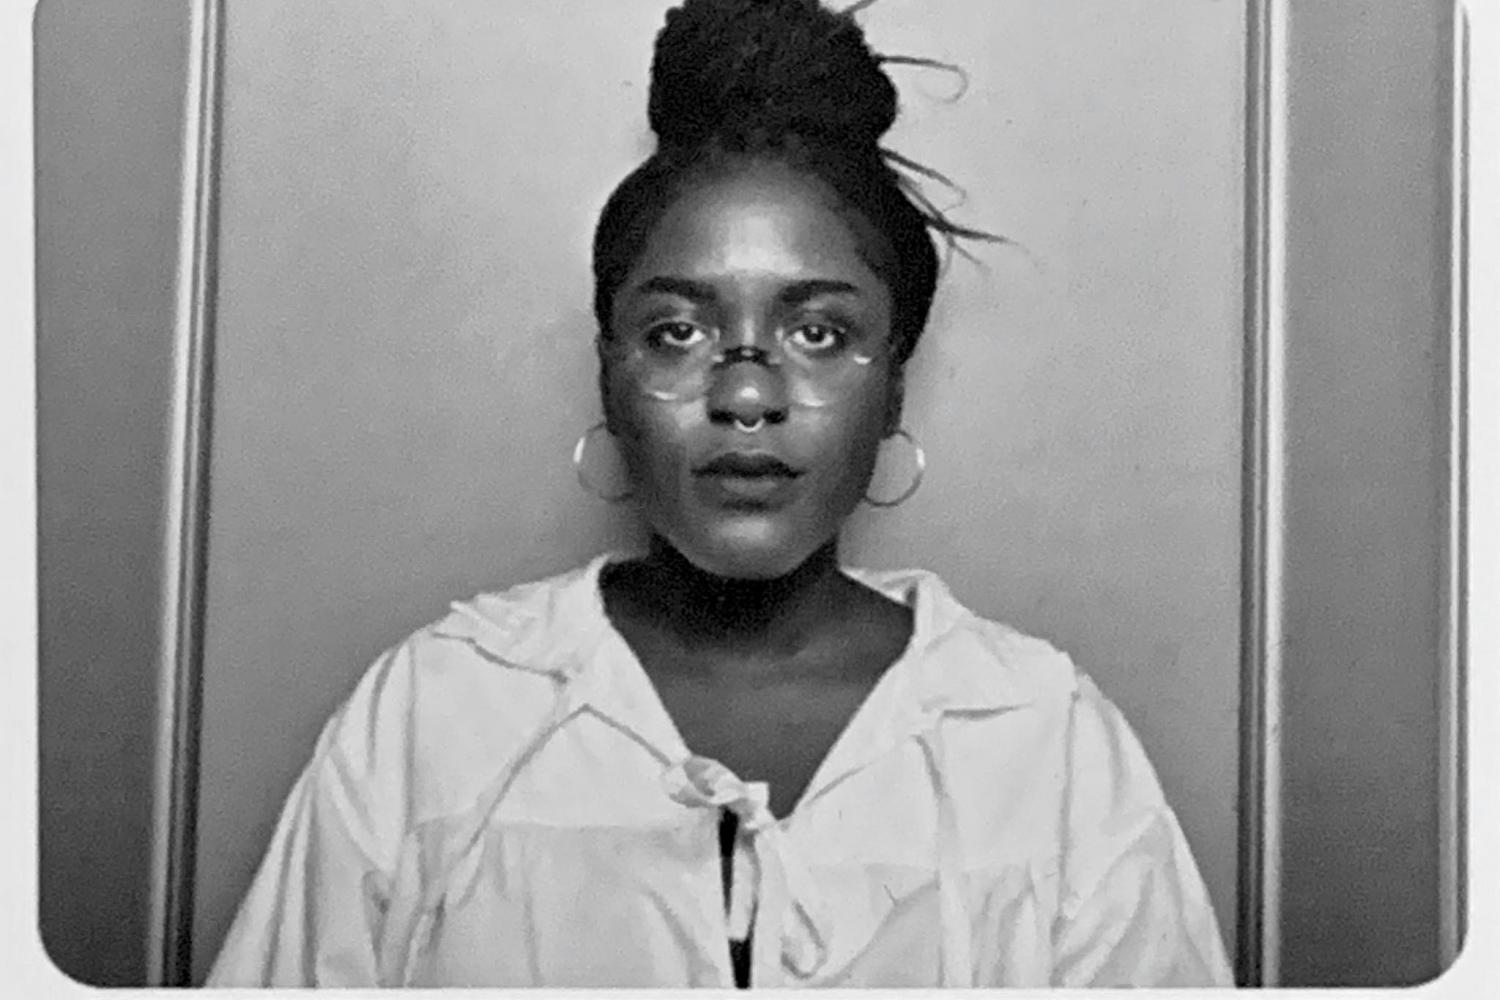 A black and white image of artist Soleil Summer, as she stares directly into the camera, wearing hoop earrings, wire rim round glasses, and white billowy shirt tied loosely at the collar. Her hair is up in a bun, she her expression is neutral.